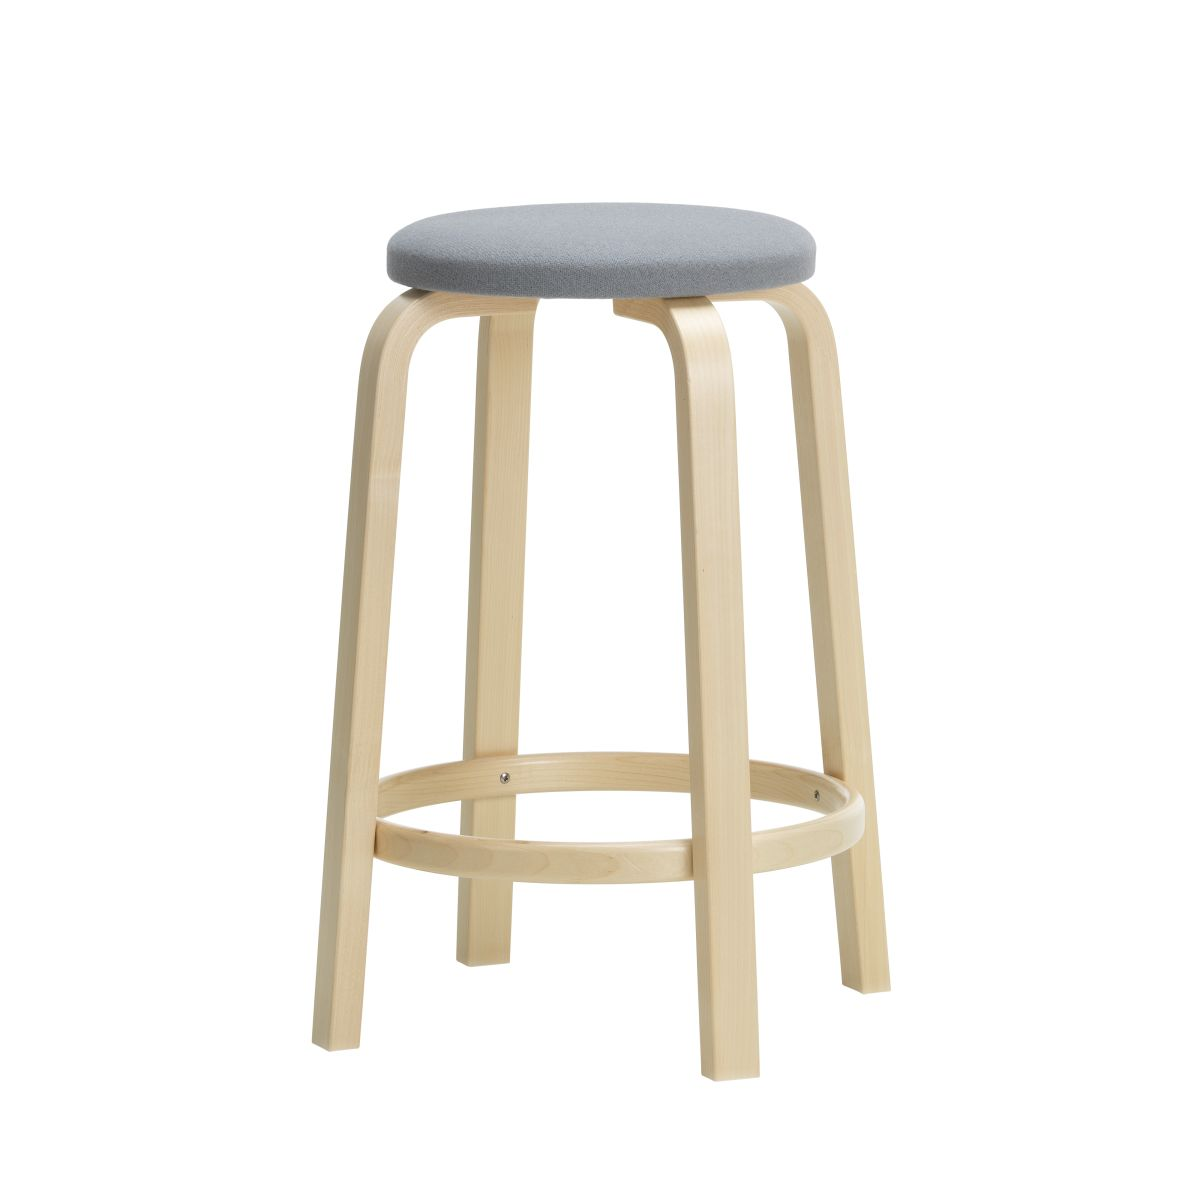 Bar-Stool-64-65cm-natural-upholstery-Kvadrat-Tonus-216_F-2868282